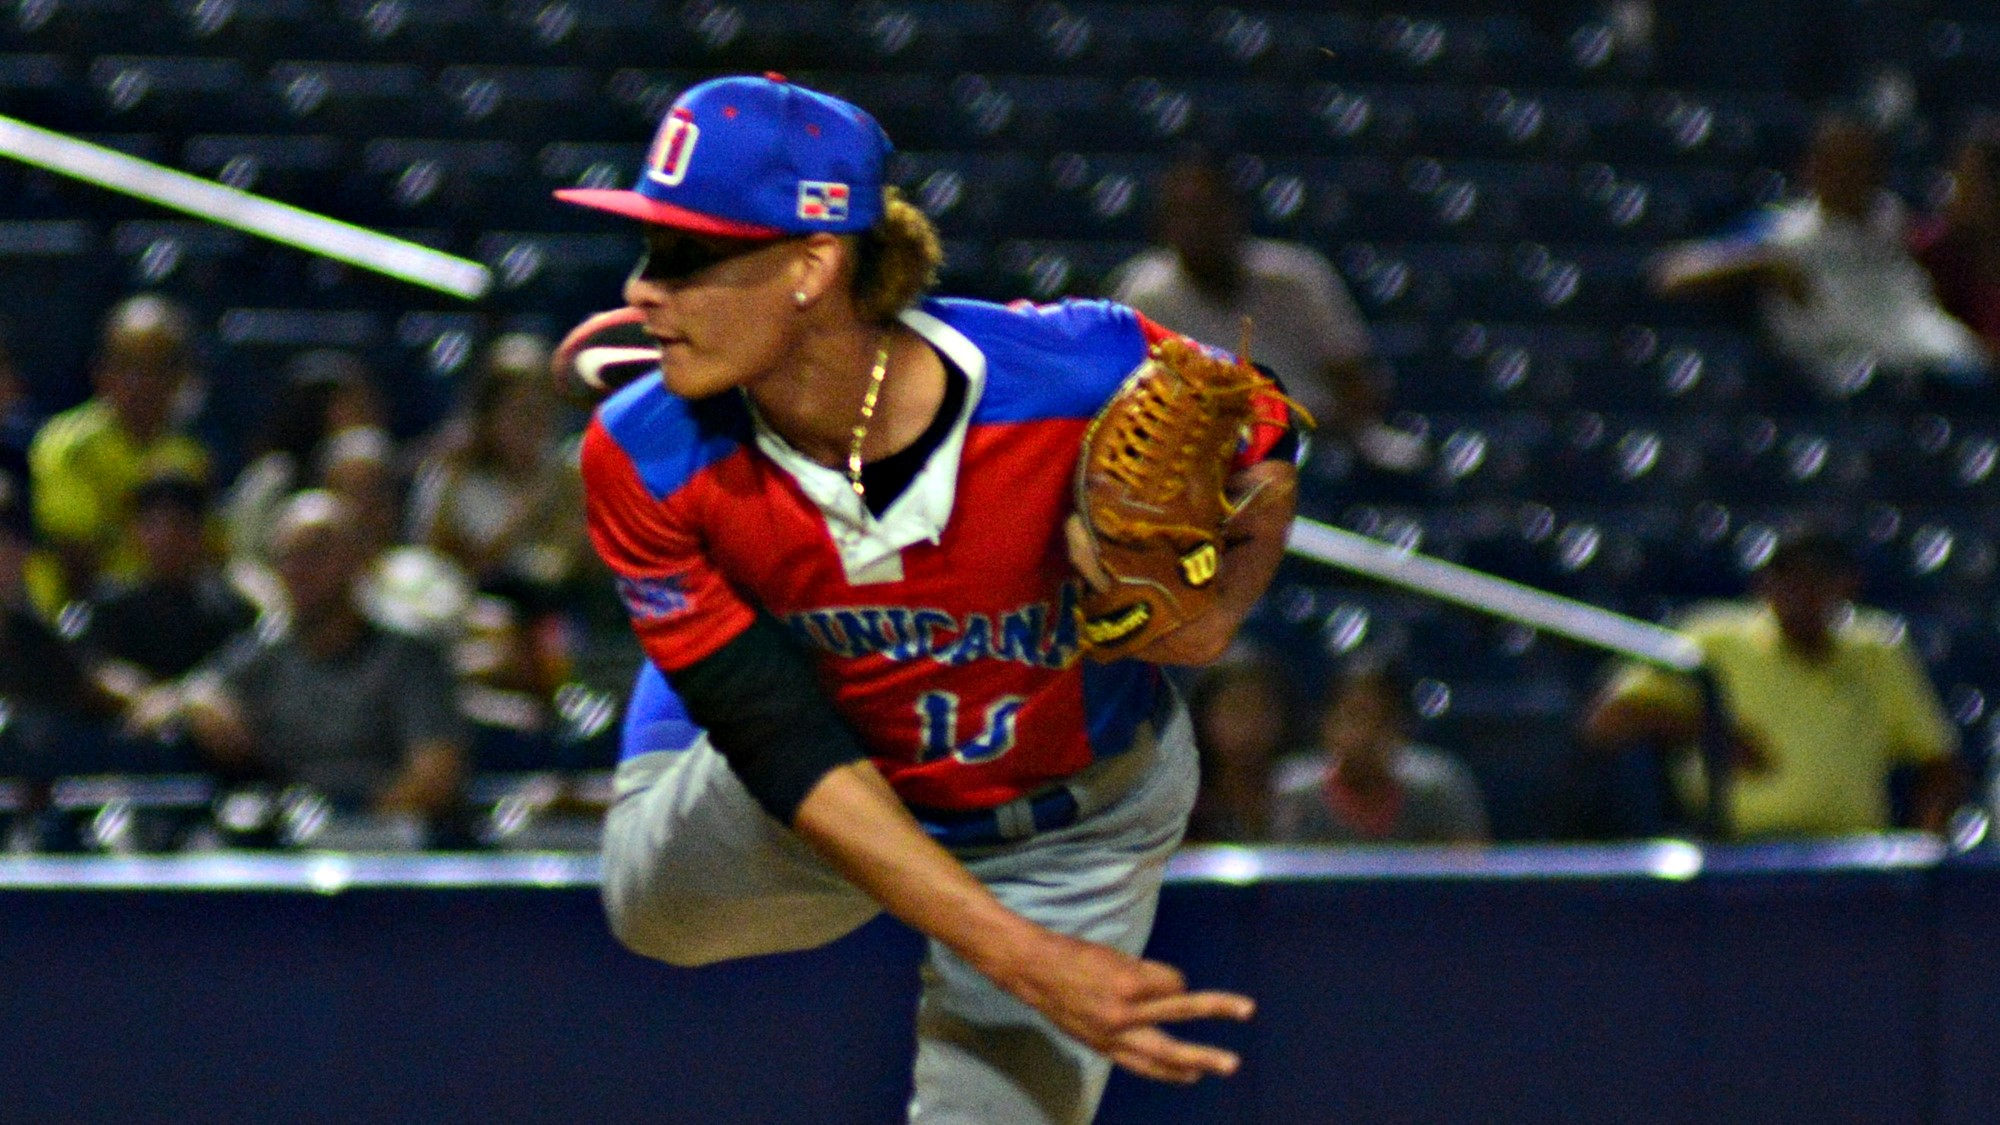 Wilber Perez started fotr the Dominican Republic